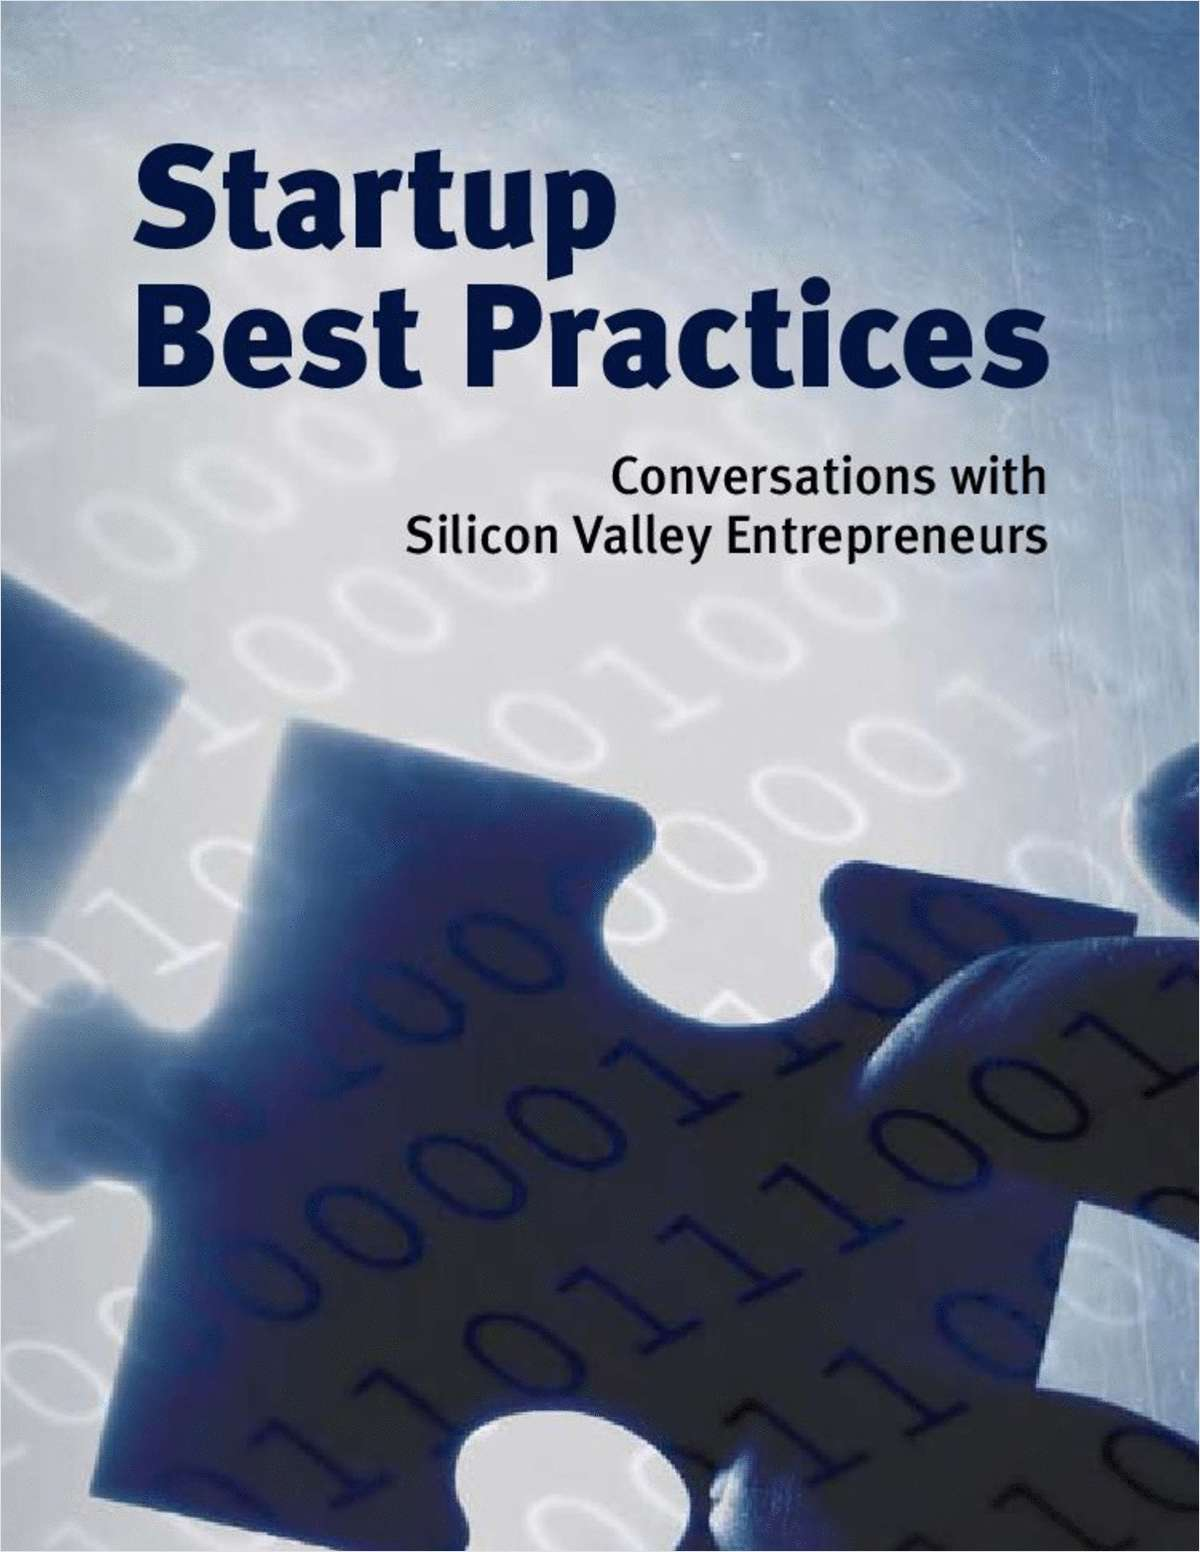 Startup Best Practices from 15 Serial Entrepreneurs